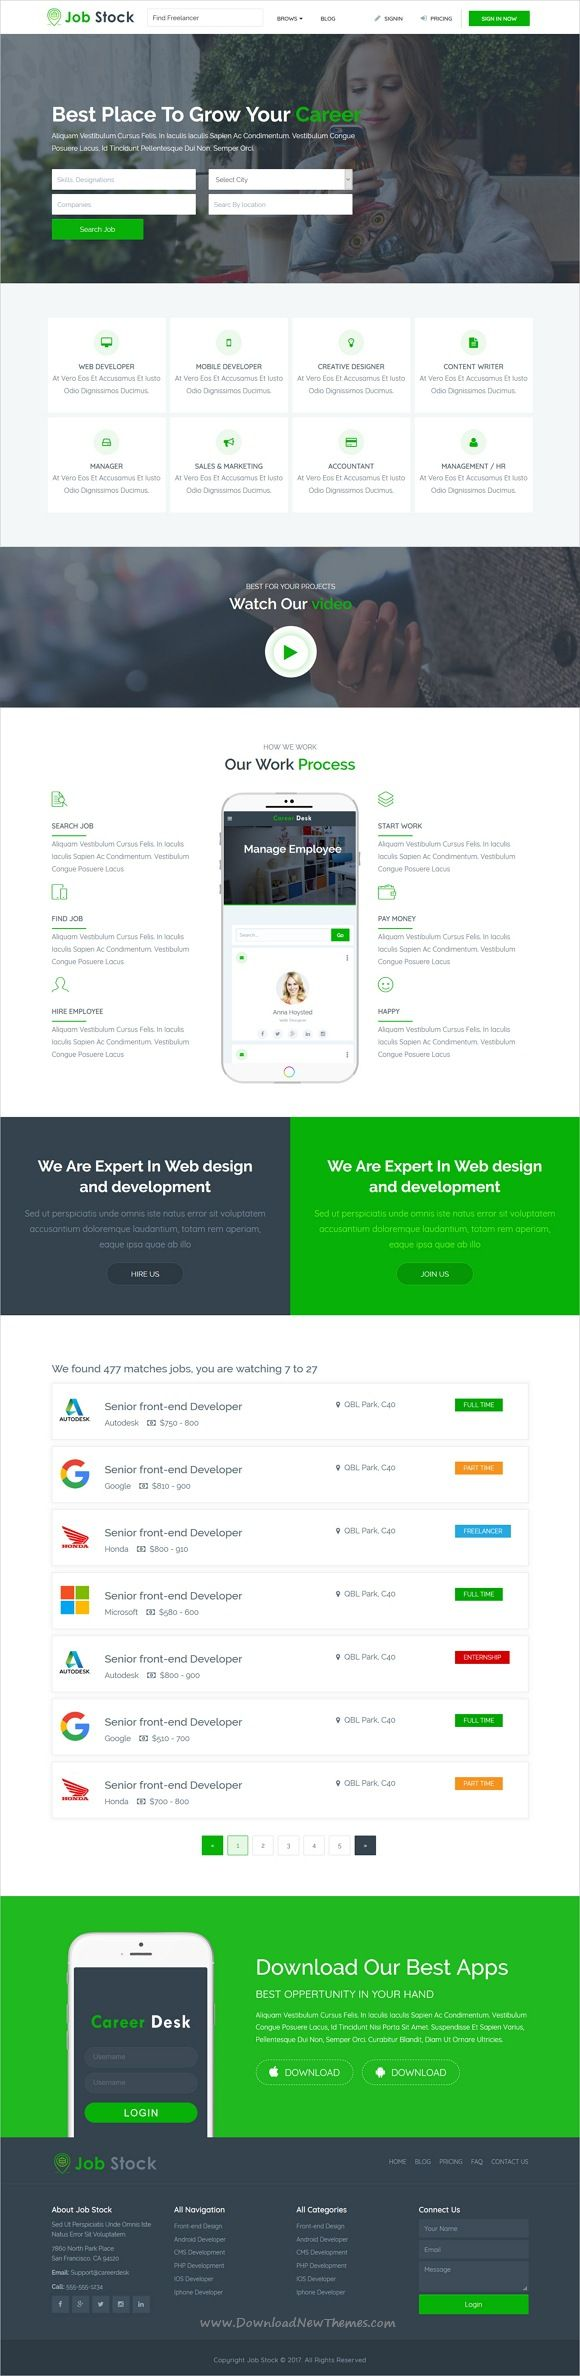 Job Stock is clean and modern design 4in1 responsive #bootstrap template for creative #jobboard or #jobs portal website download now..